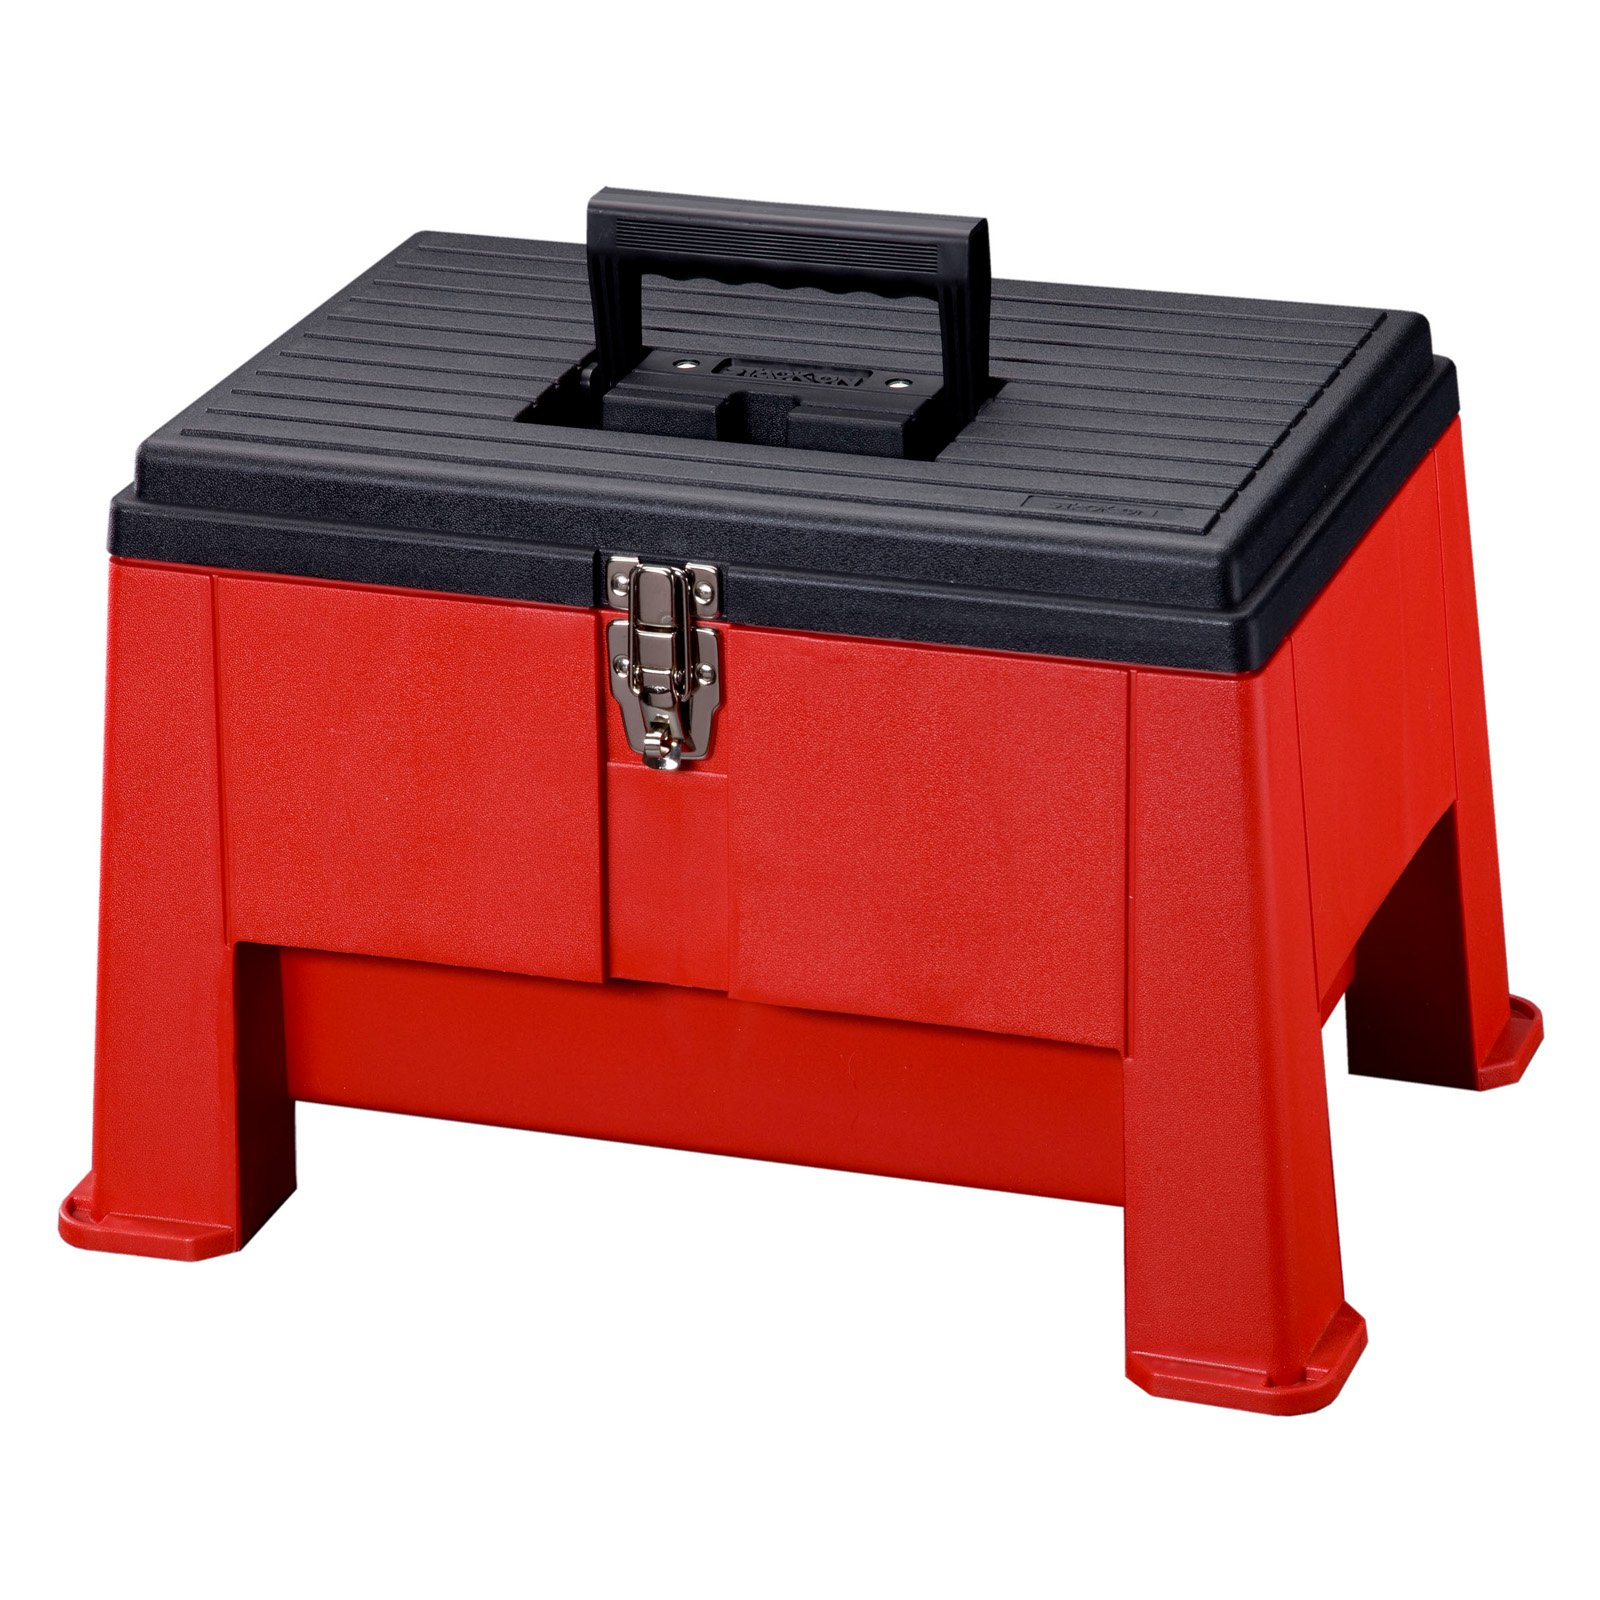 "Stack-On 20"" Step 'N Stor Tool Box, Red"